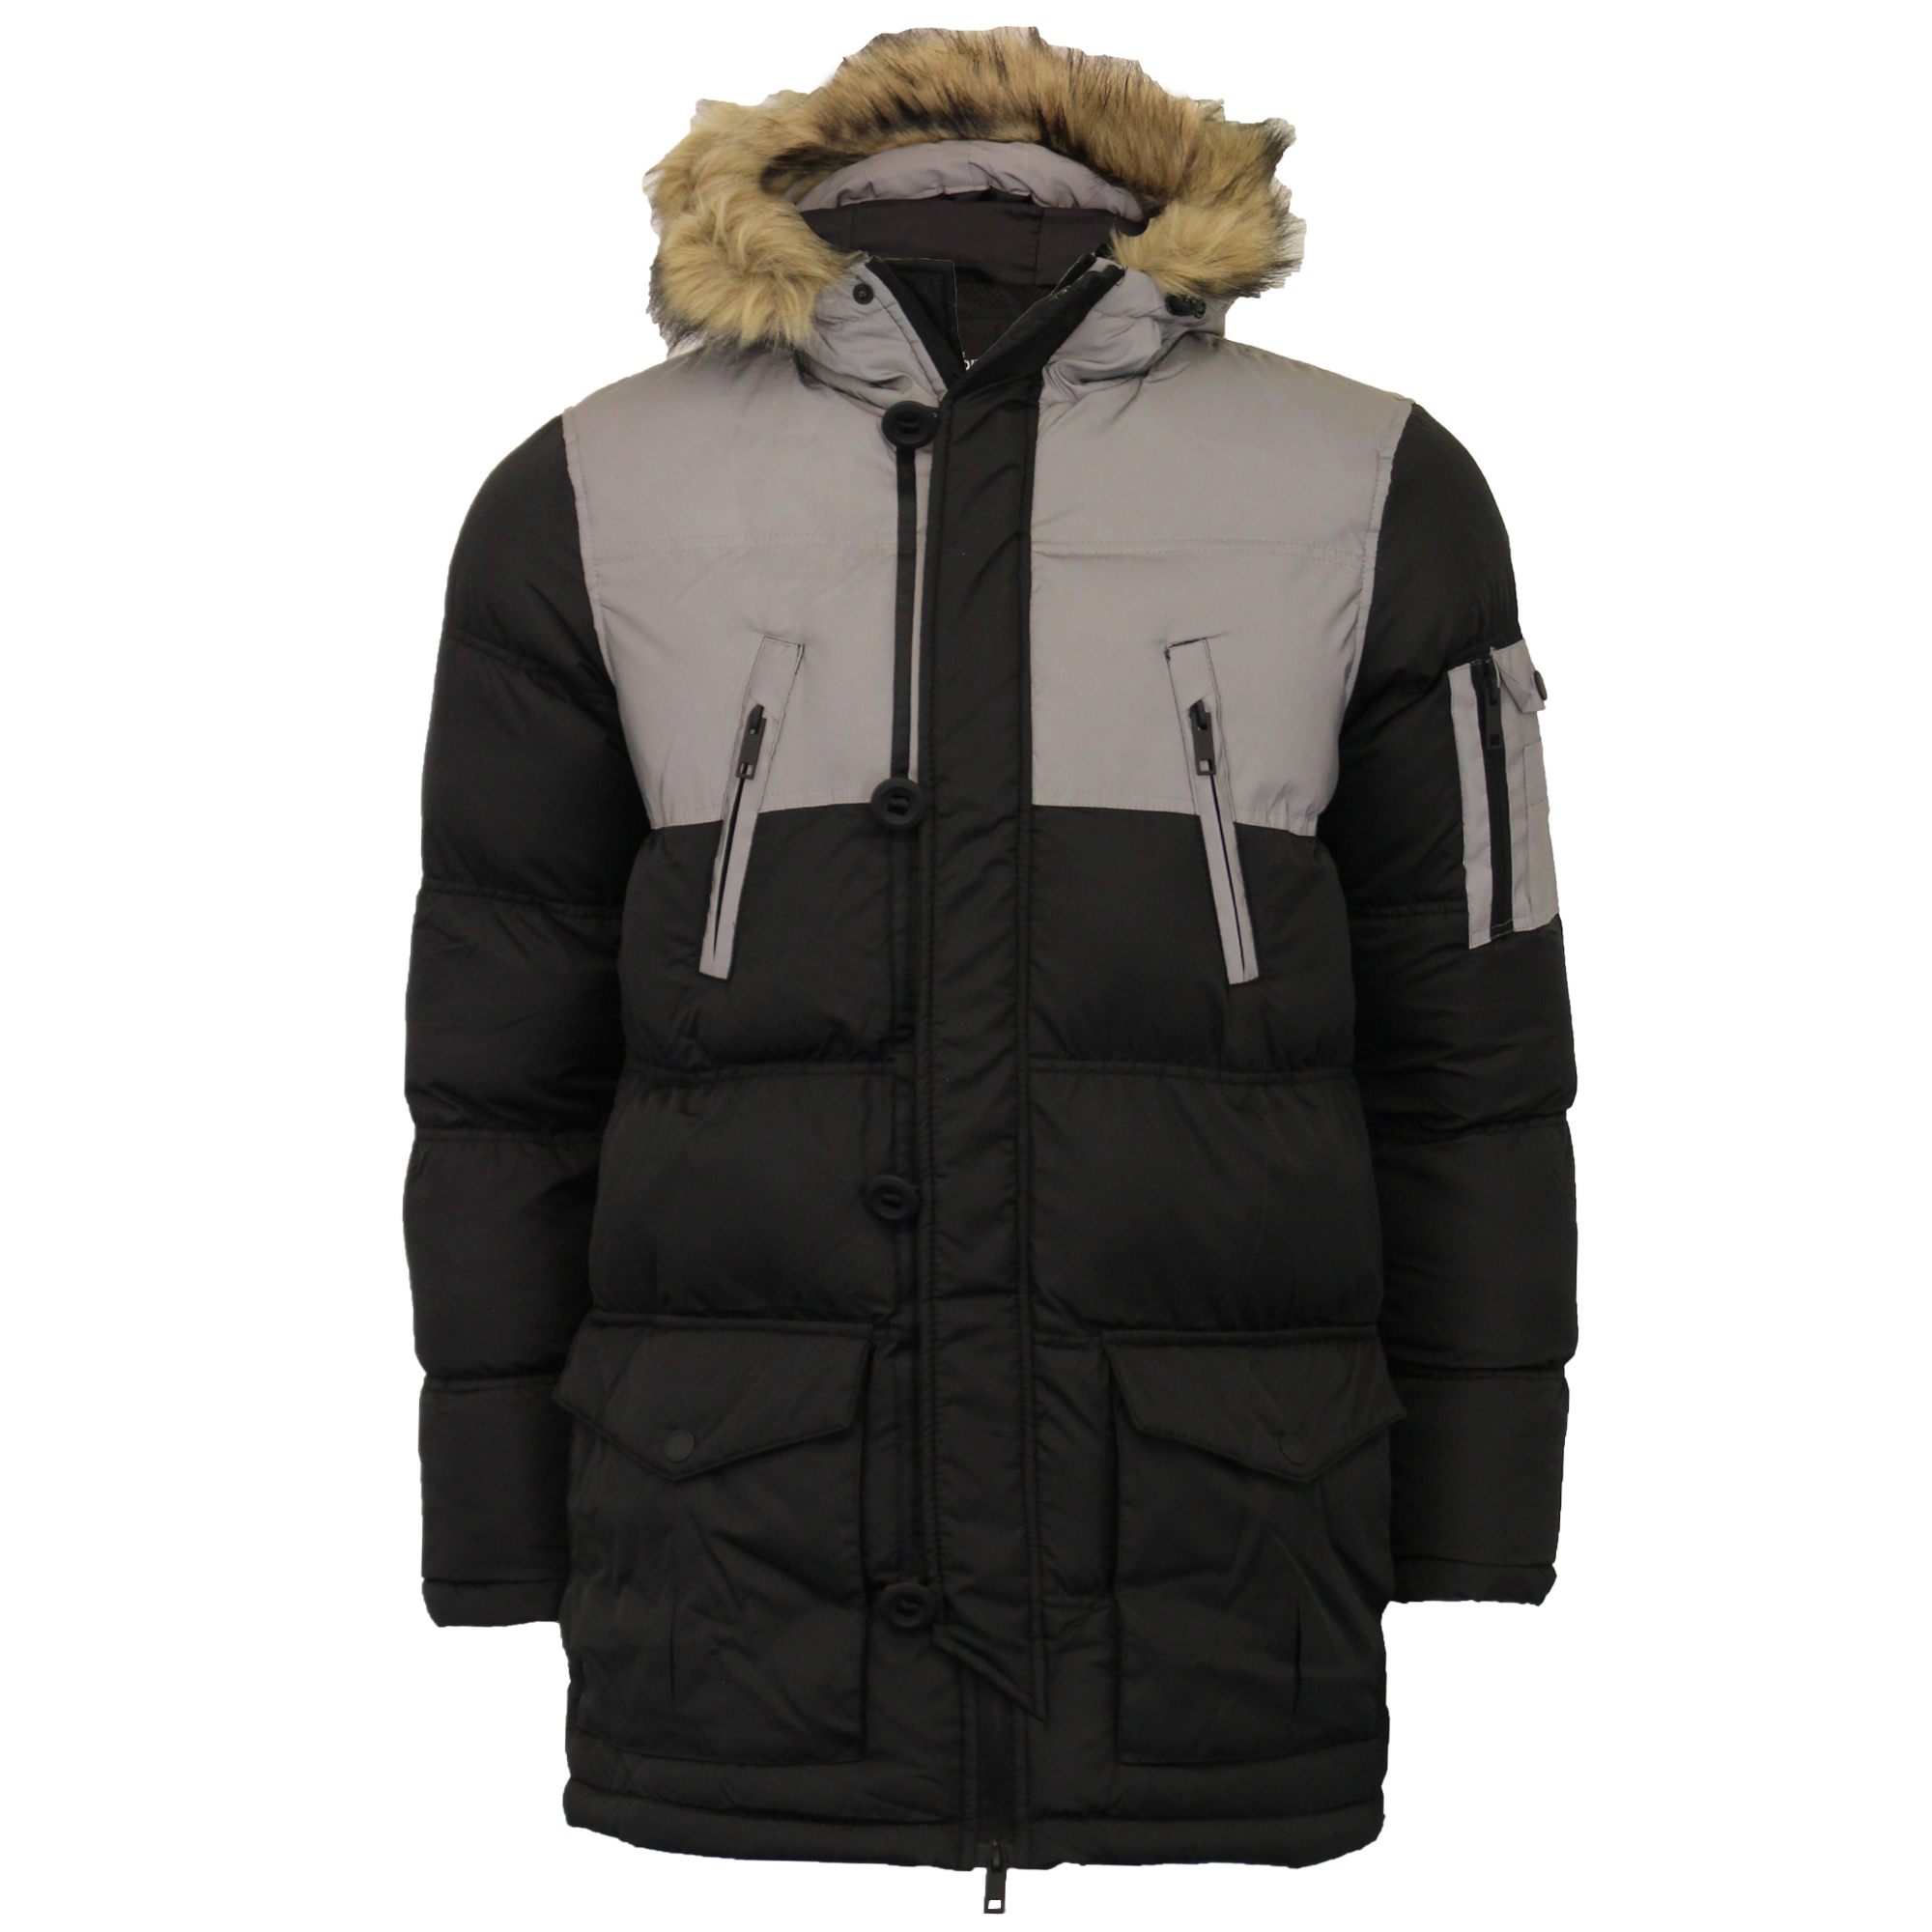 Mens-Reflective-Long-Bubble-Parka-Jacket-Brave-Soul-Coat-Hooded-Padded-Winter thumbnail 2